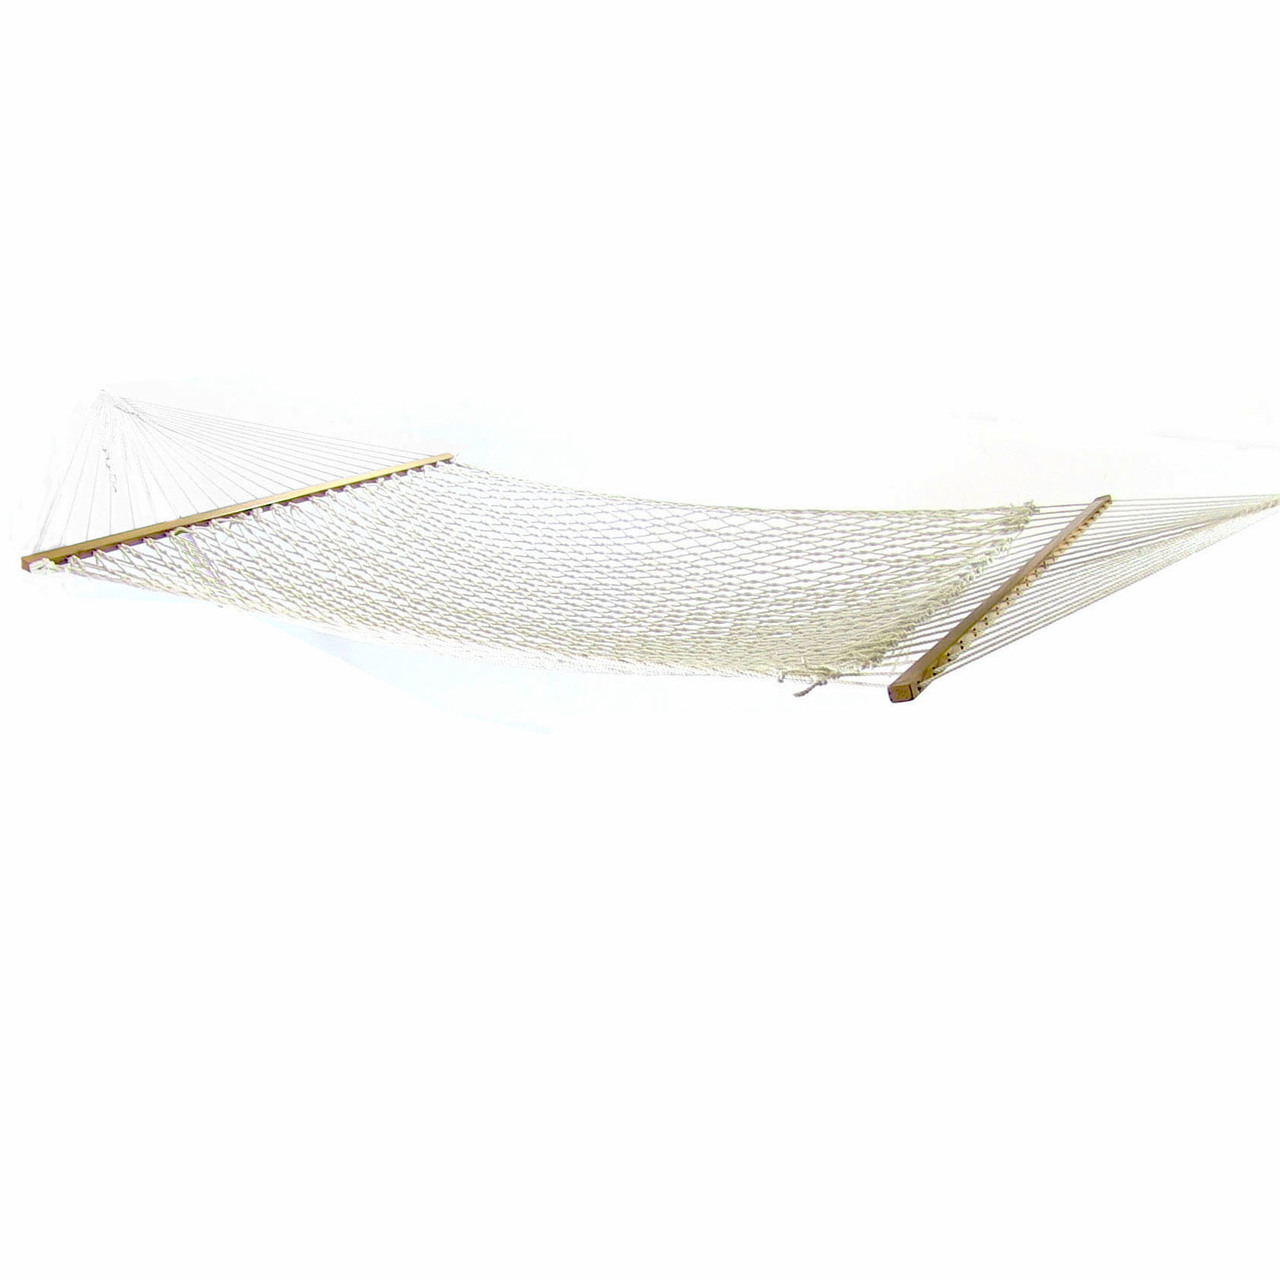 Sunnydaze 2 Person Polyester Rope Hammock With Wooden